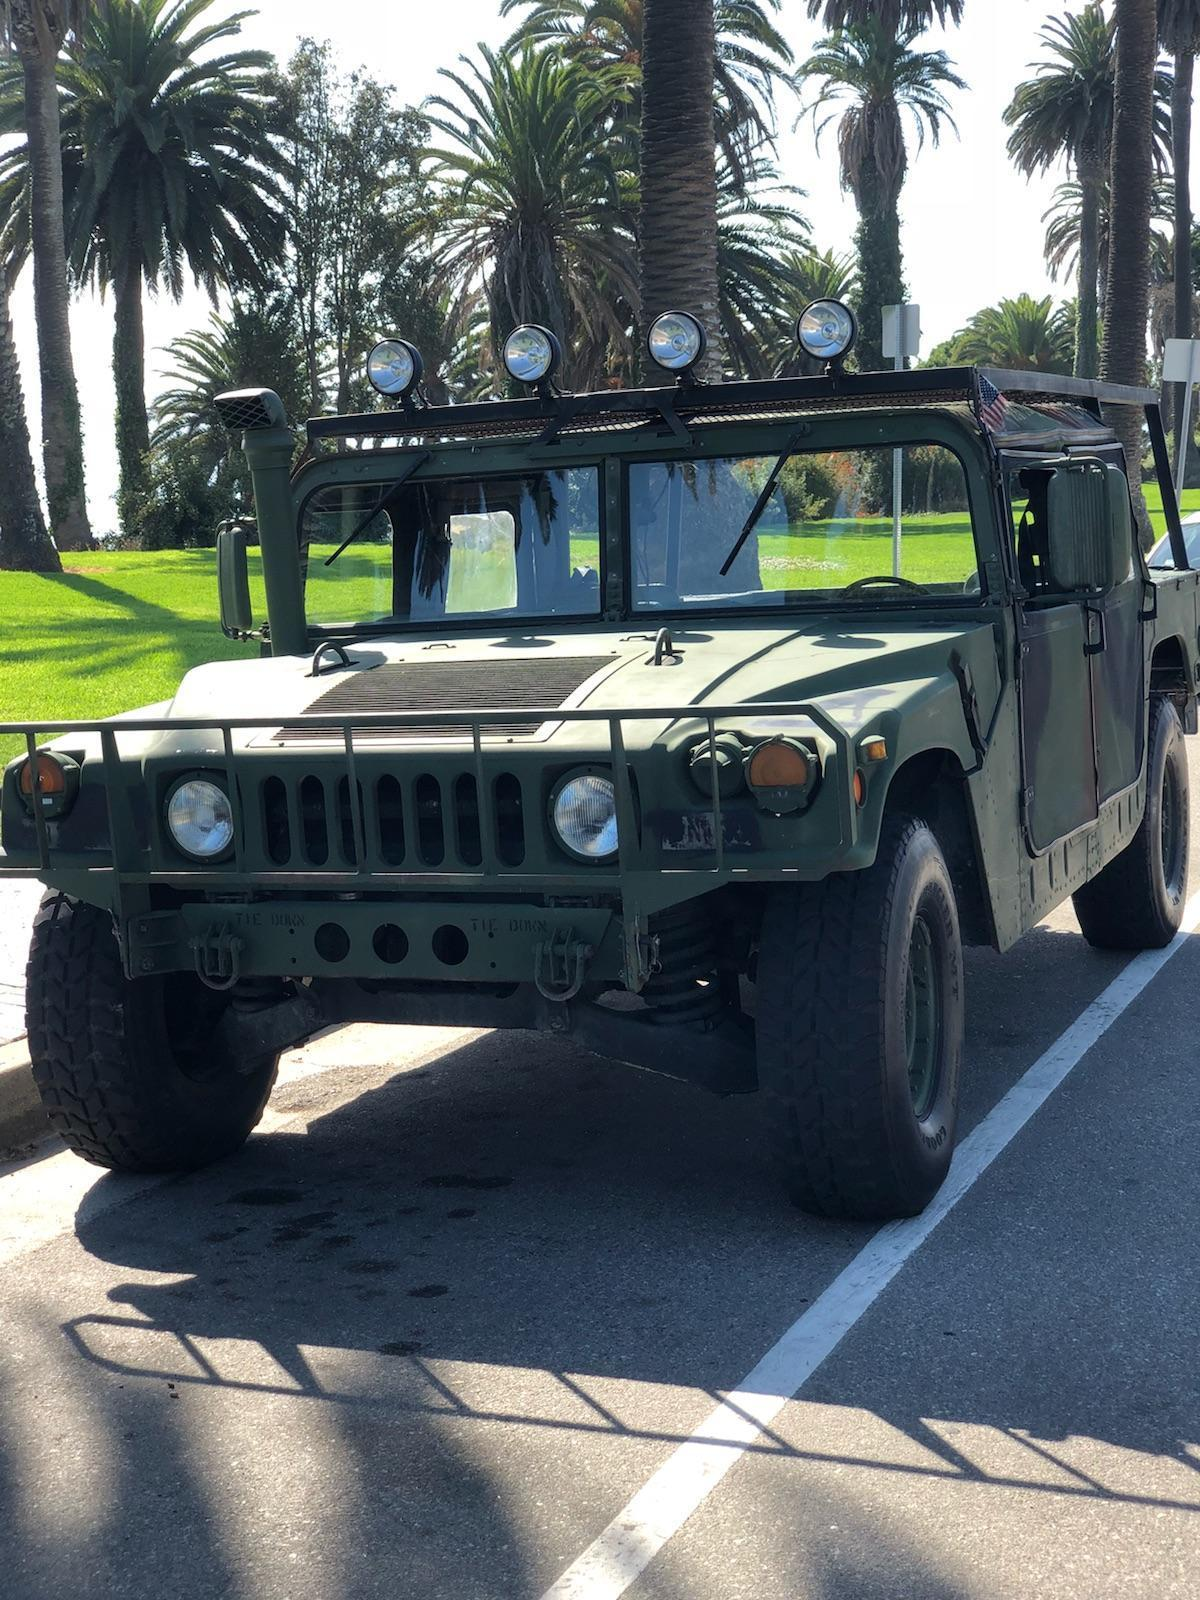 serviced 1987 AM General Humvee M998 HMMWV H1 military for sale